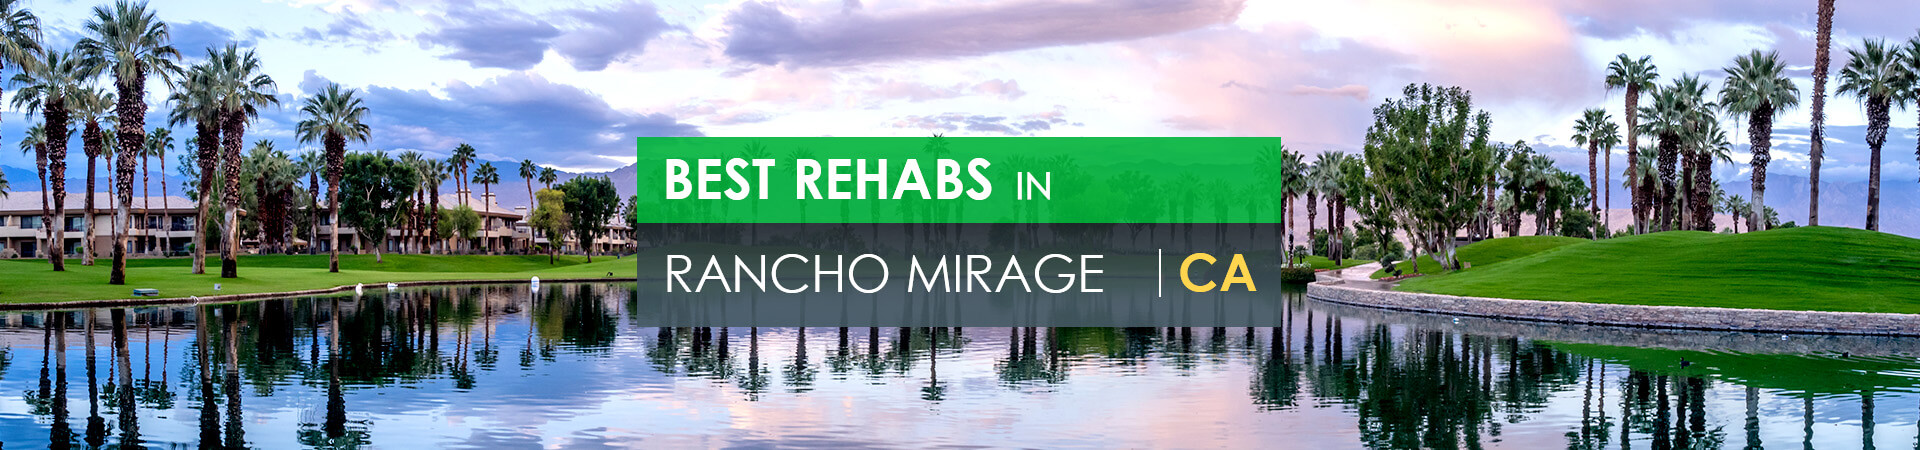 Best rehabs in Rancho Mirage, CA